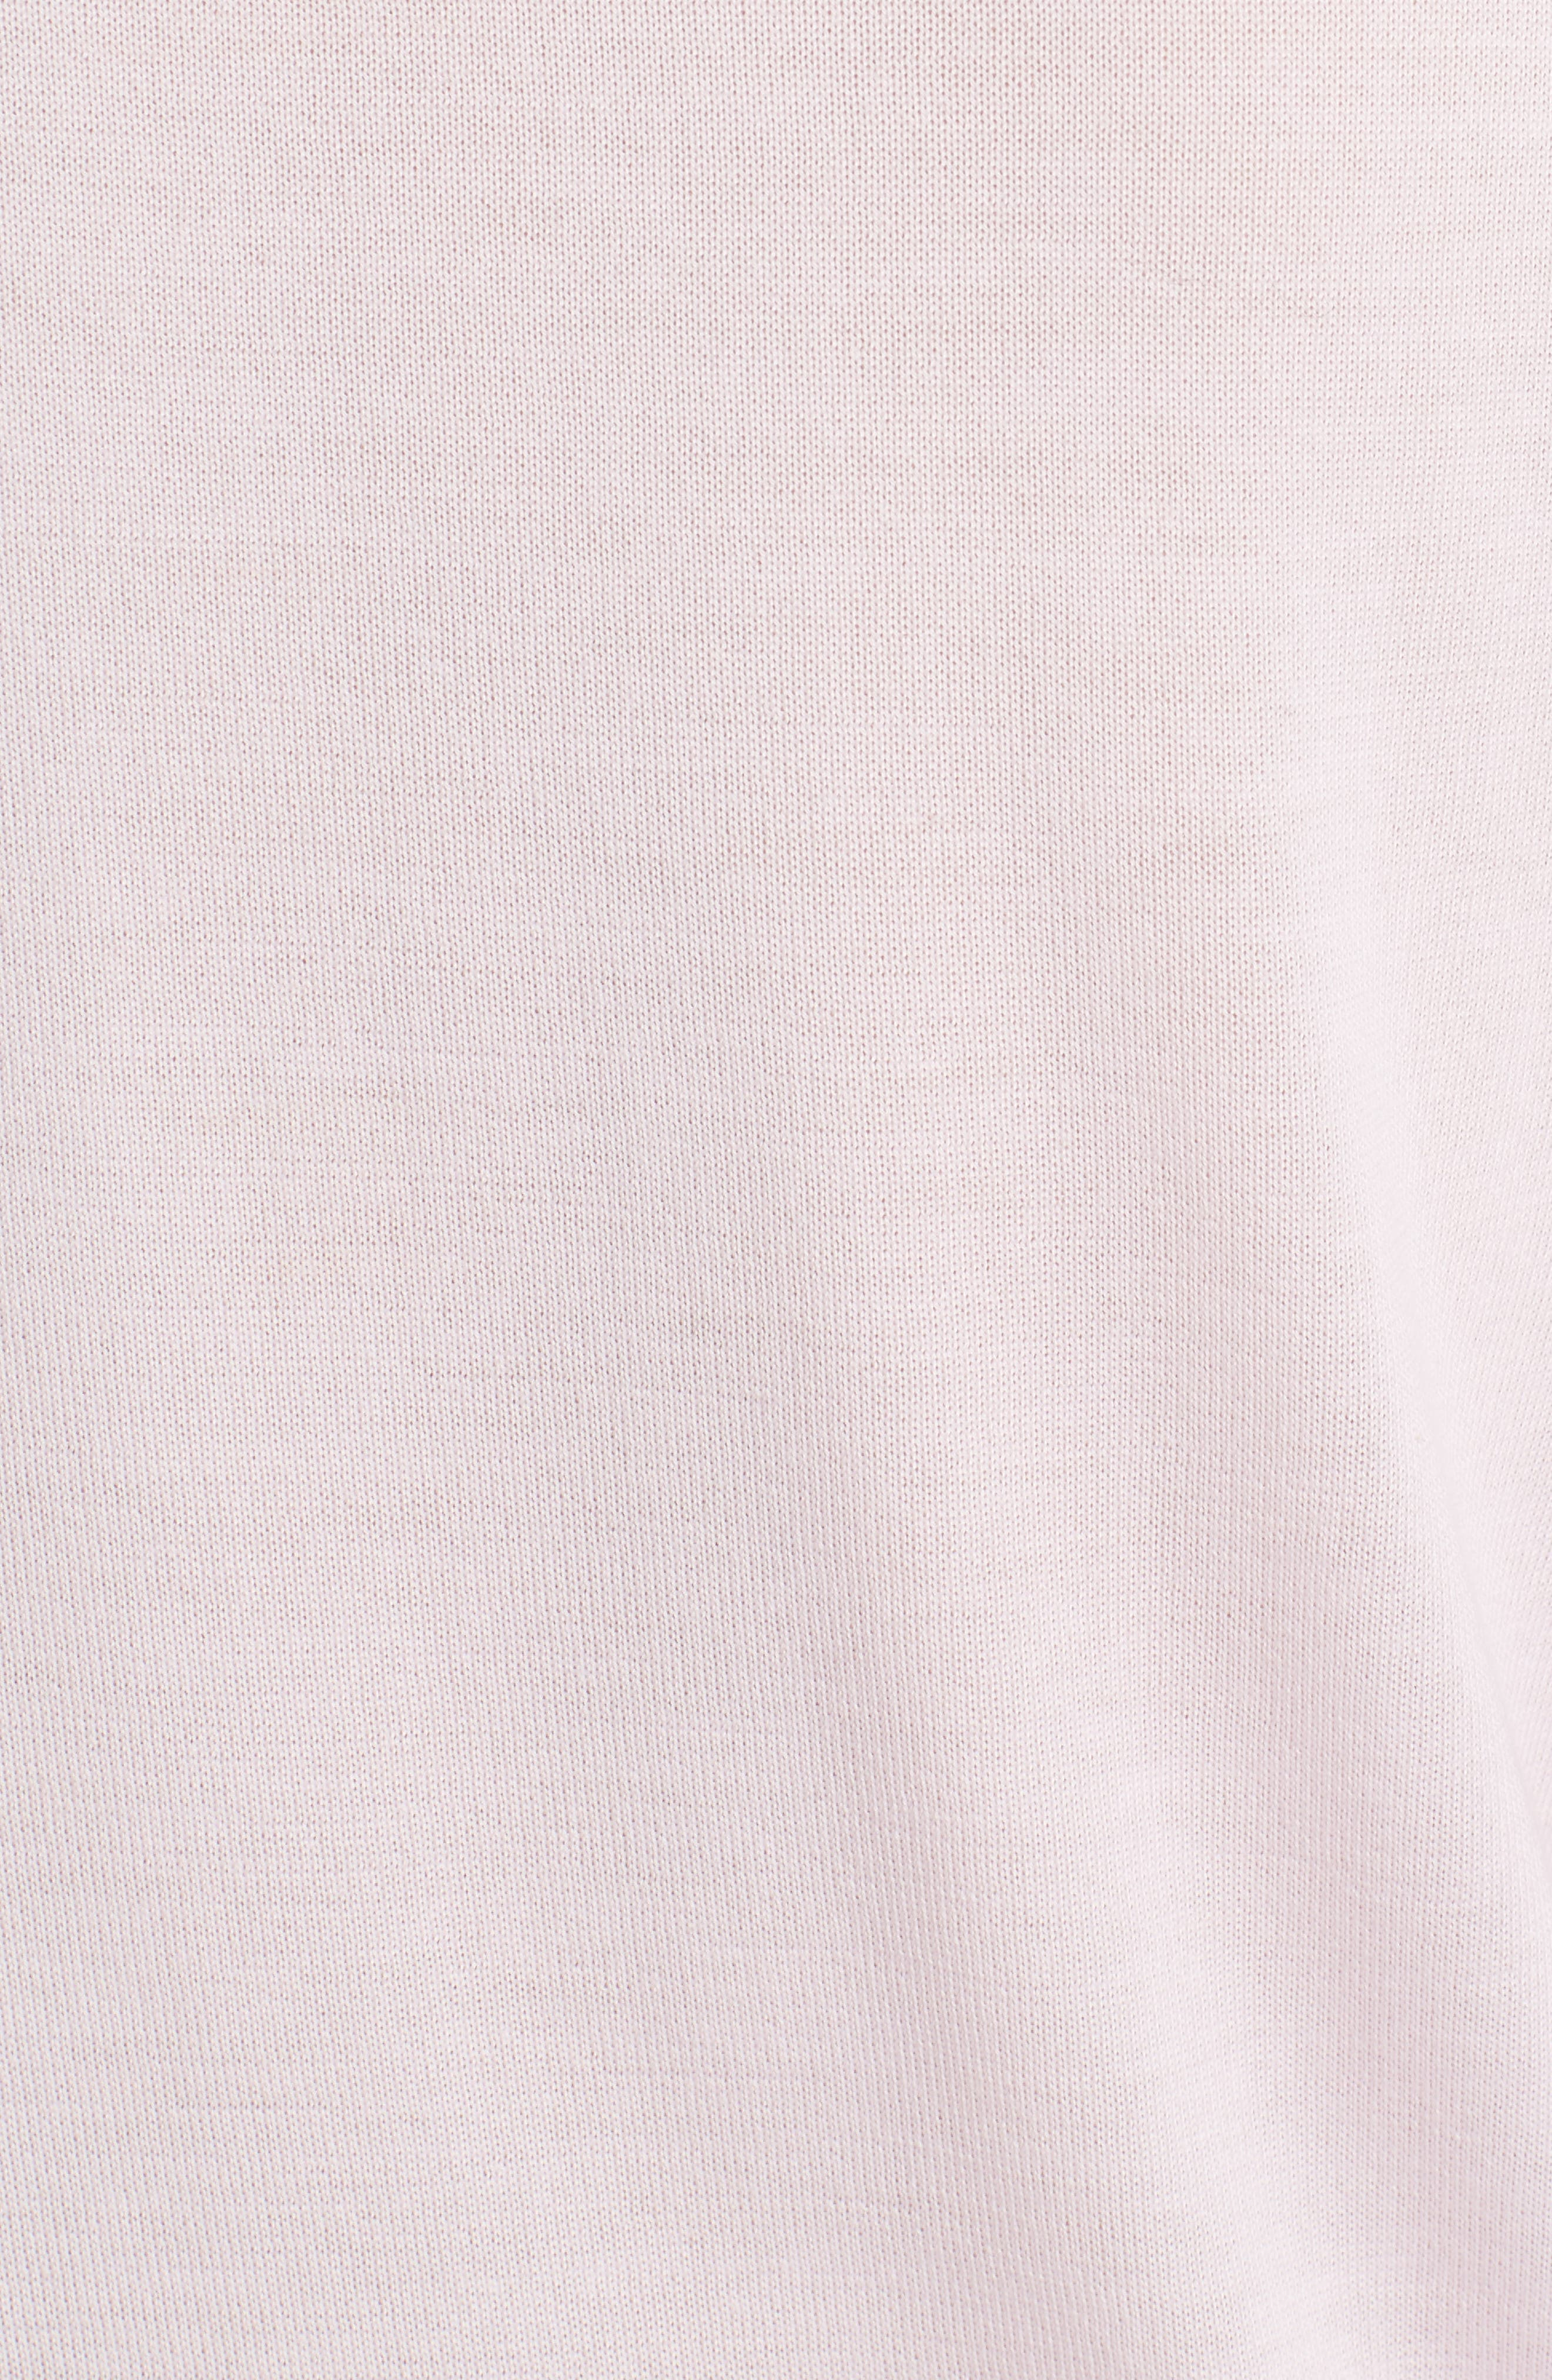 Cashmere Sweater,                             Alternate thumbnail 3, color,                             Powder Pink